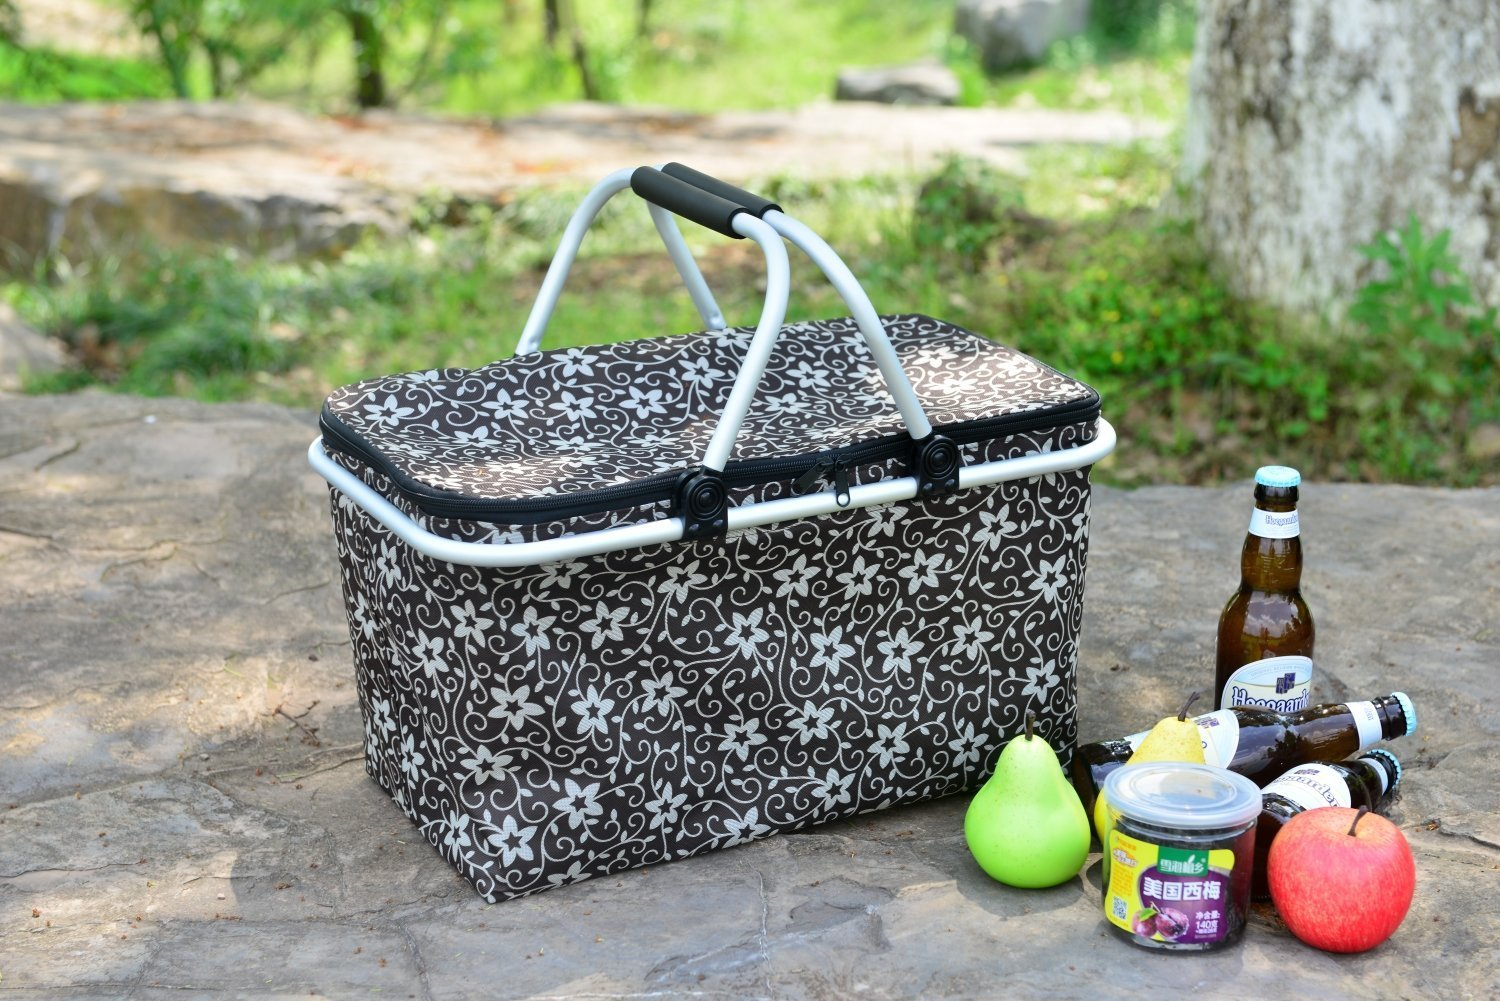 WISHPOOL Insulated Picnic Basket Collapsible Cooler Tote Box Outdoor Lunch Bag Large 18.9\